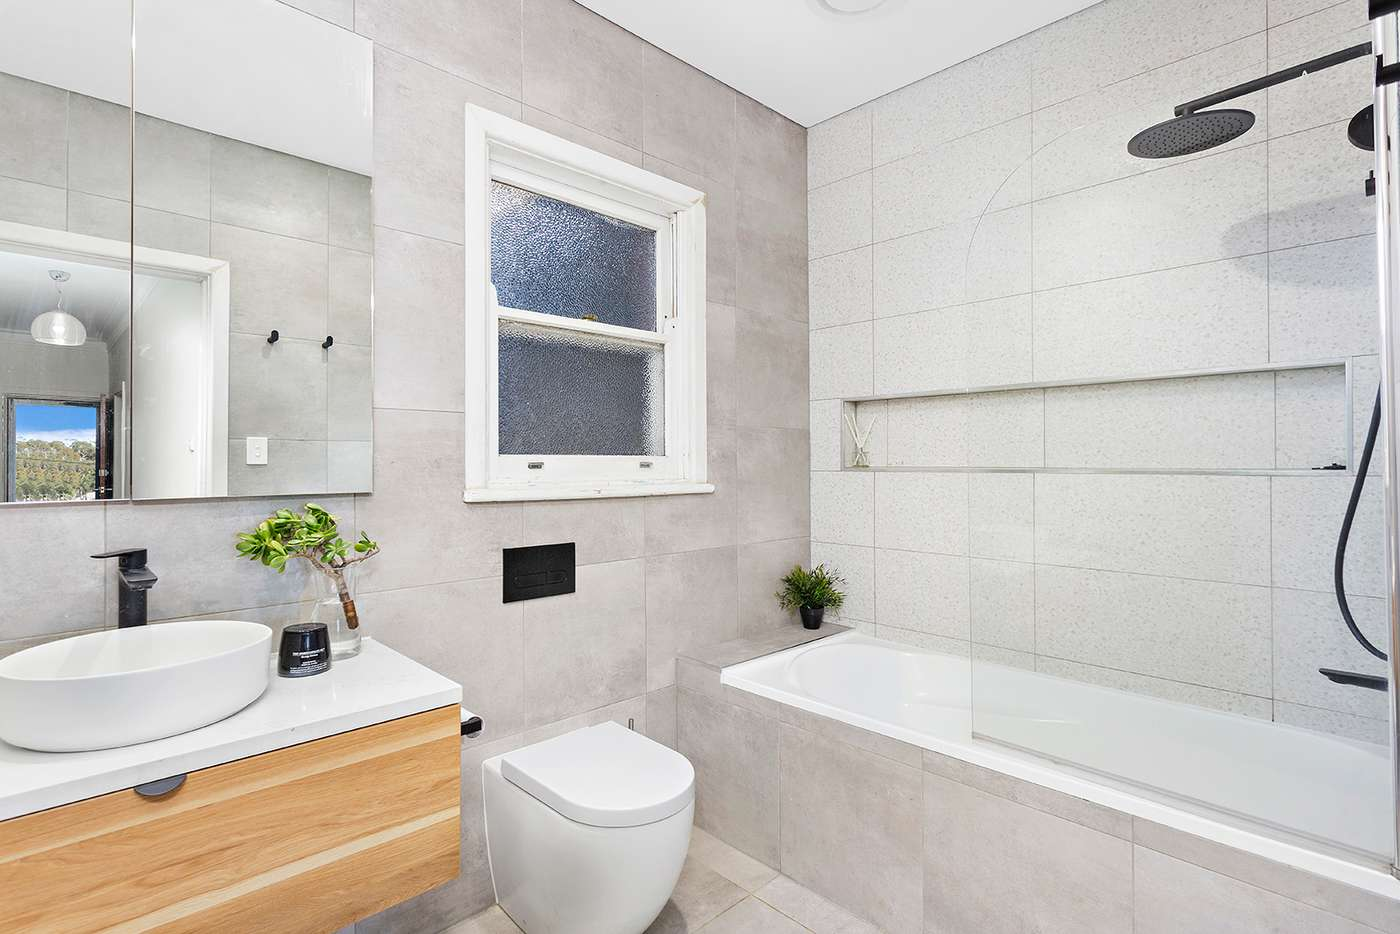 Sixth view of Homely house listing, 10 Prospect Street, Mount Saint Thomas NSW 2500